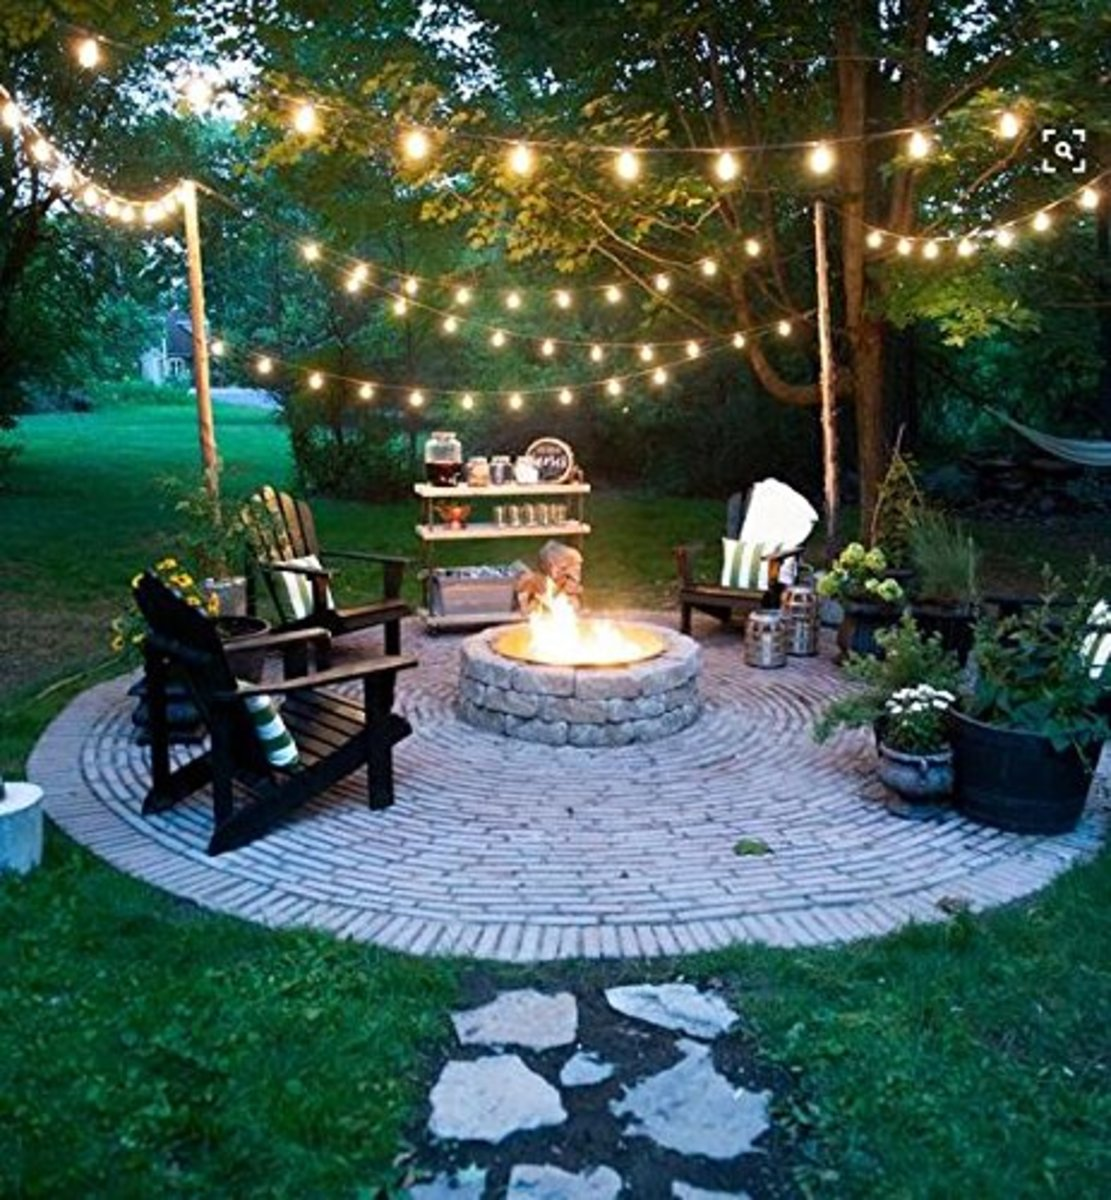 Outdoor living for spring.